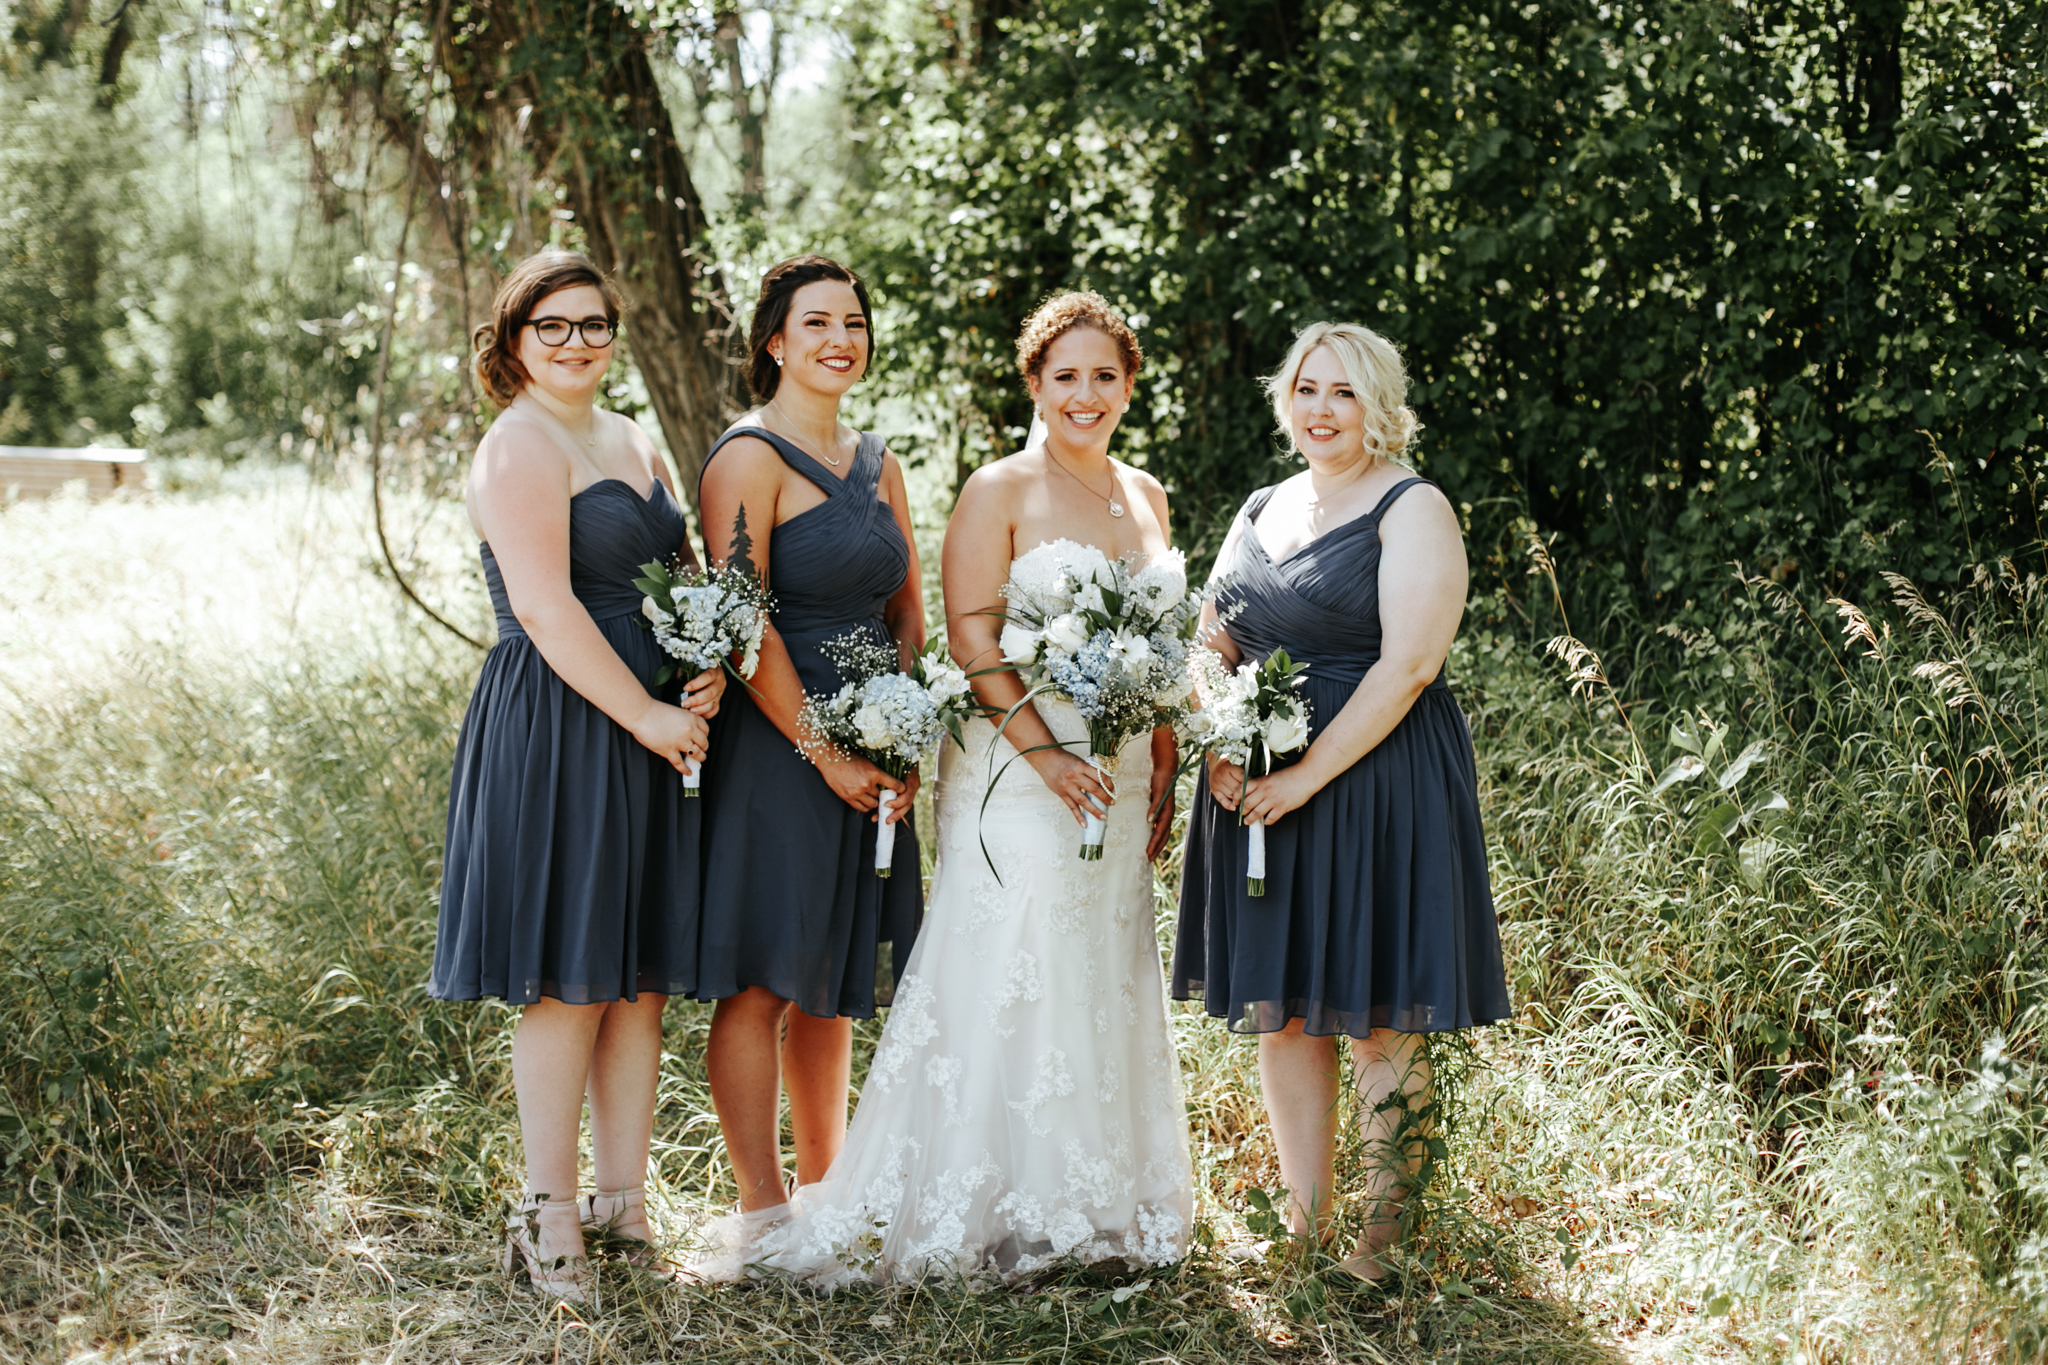 lethbridge-wedding-photographer-love-and-be-loved-photography-trent-danielle-galt-reception-picture-image-photo-103.jpg